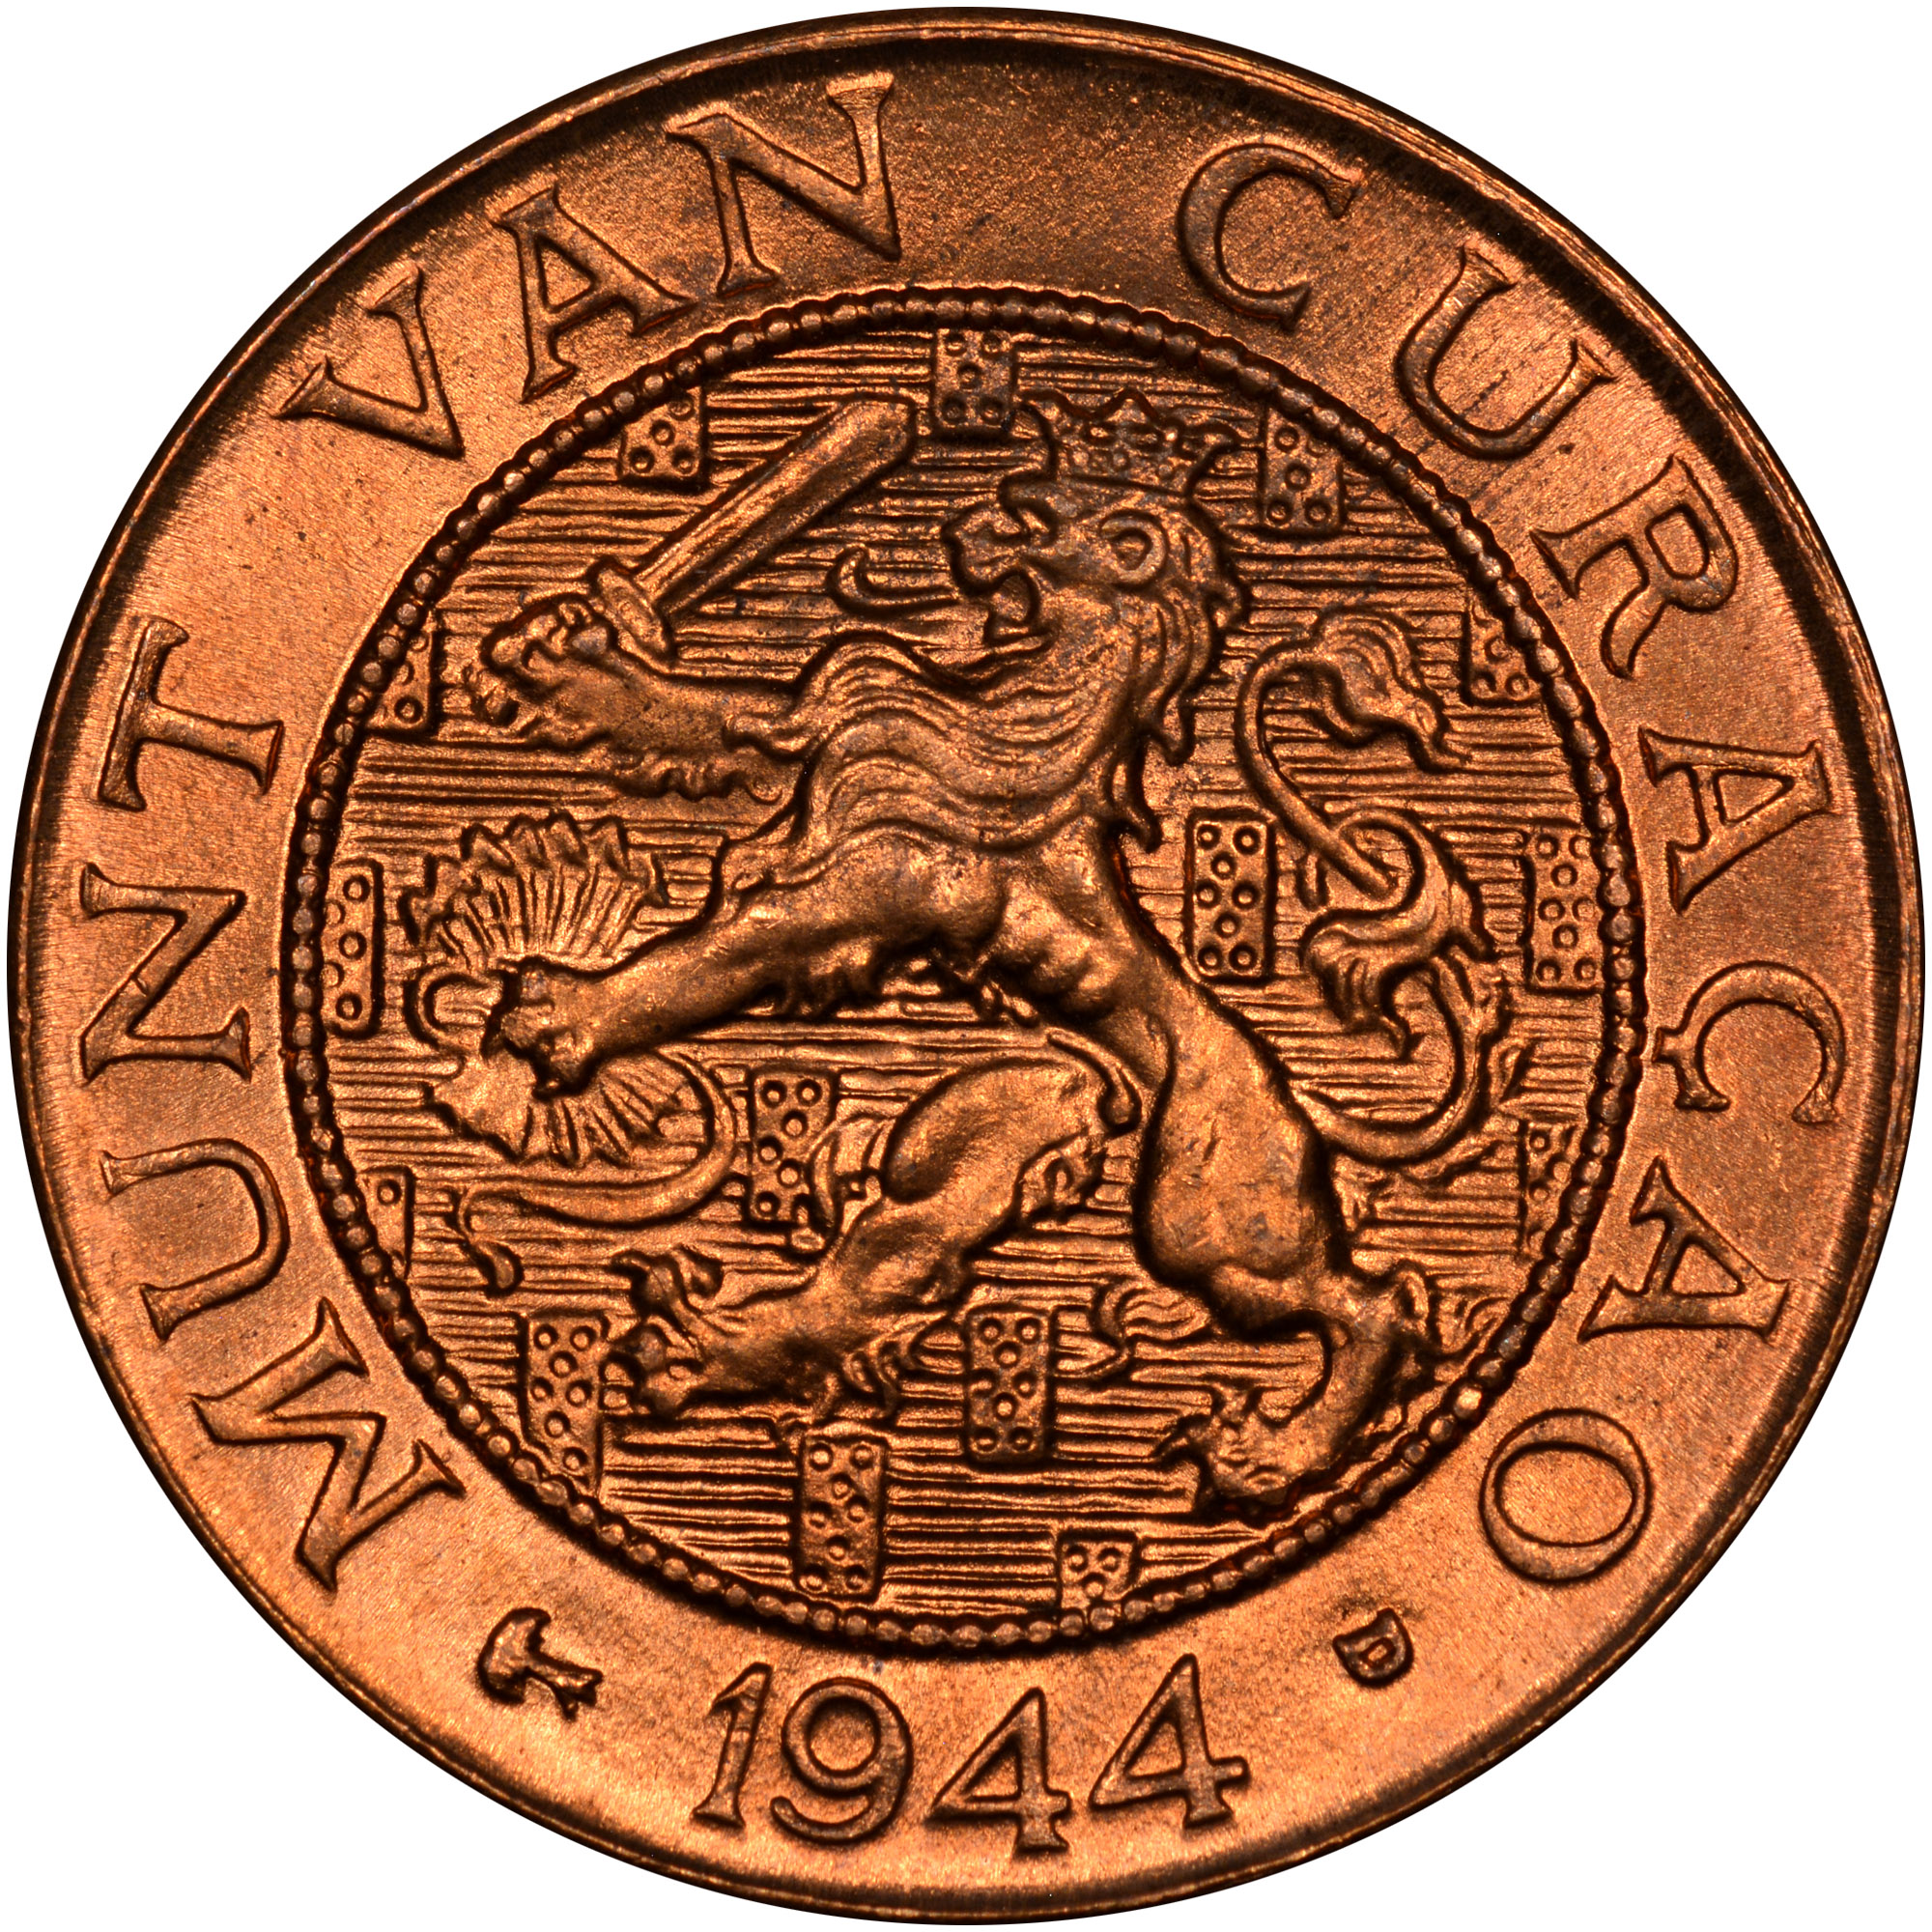 1944-1947 Curacao Cent obverse